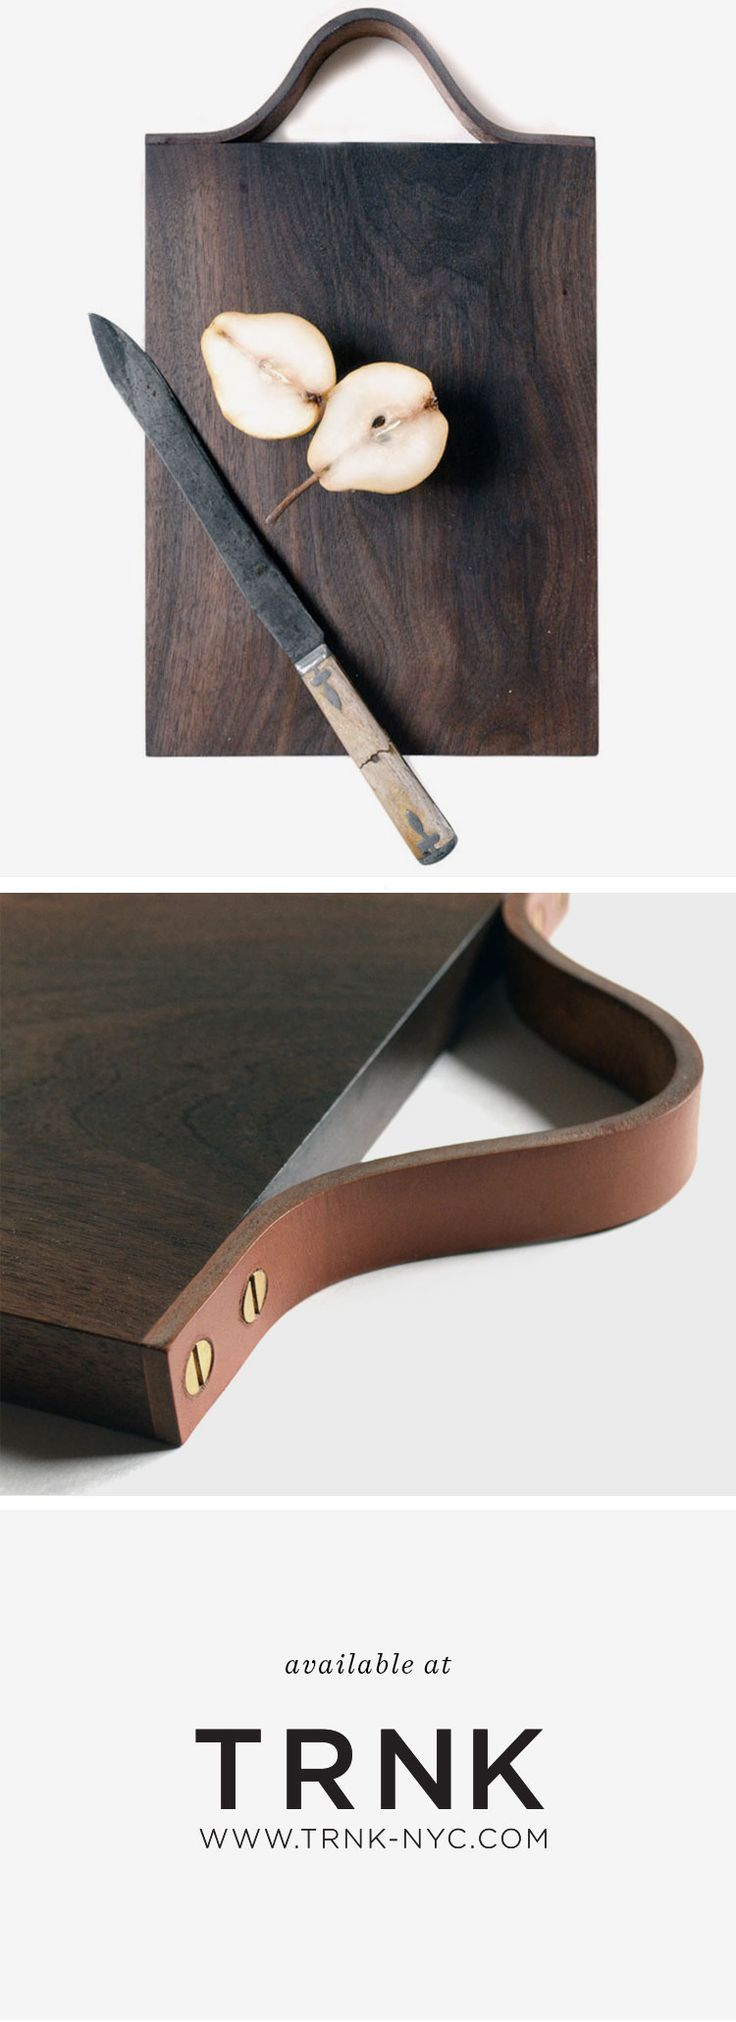 A handcrafted walnut serving board with a saddle leather handle. @estemag #estliving #estdesigndirectory